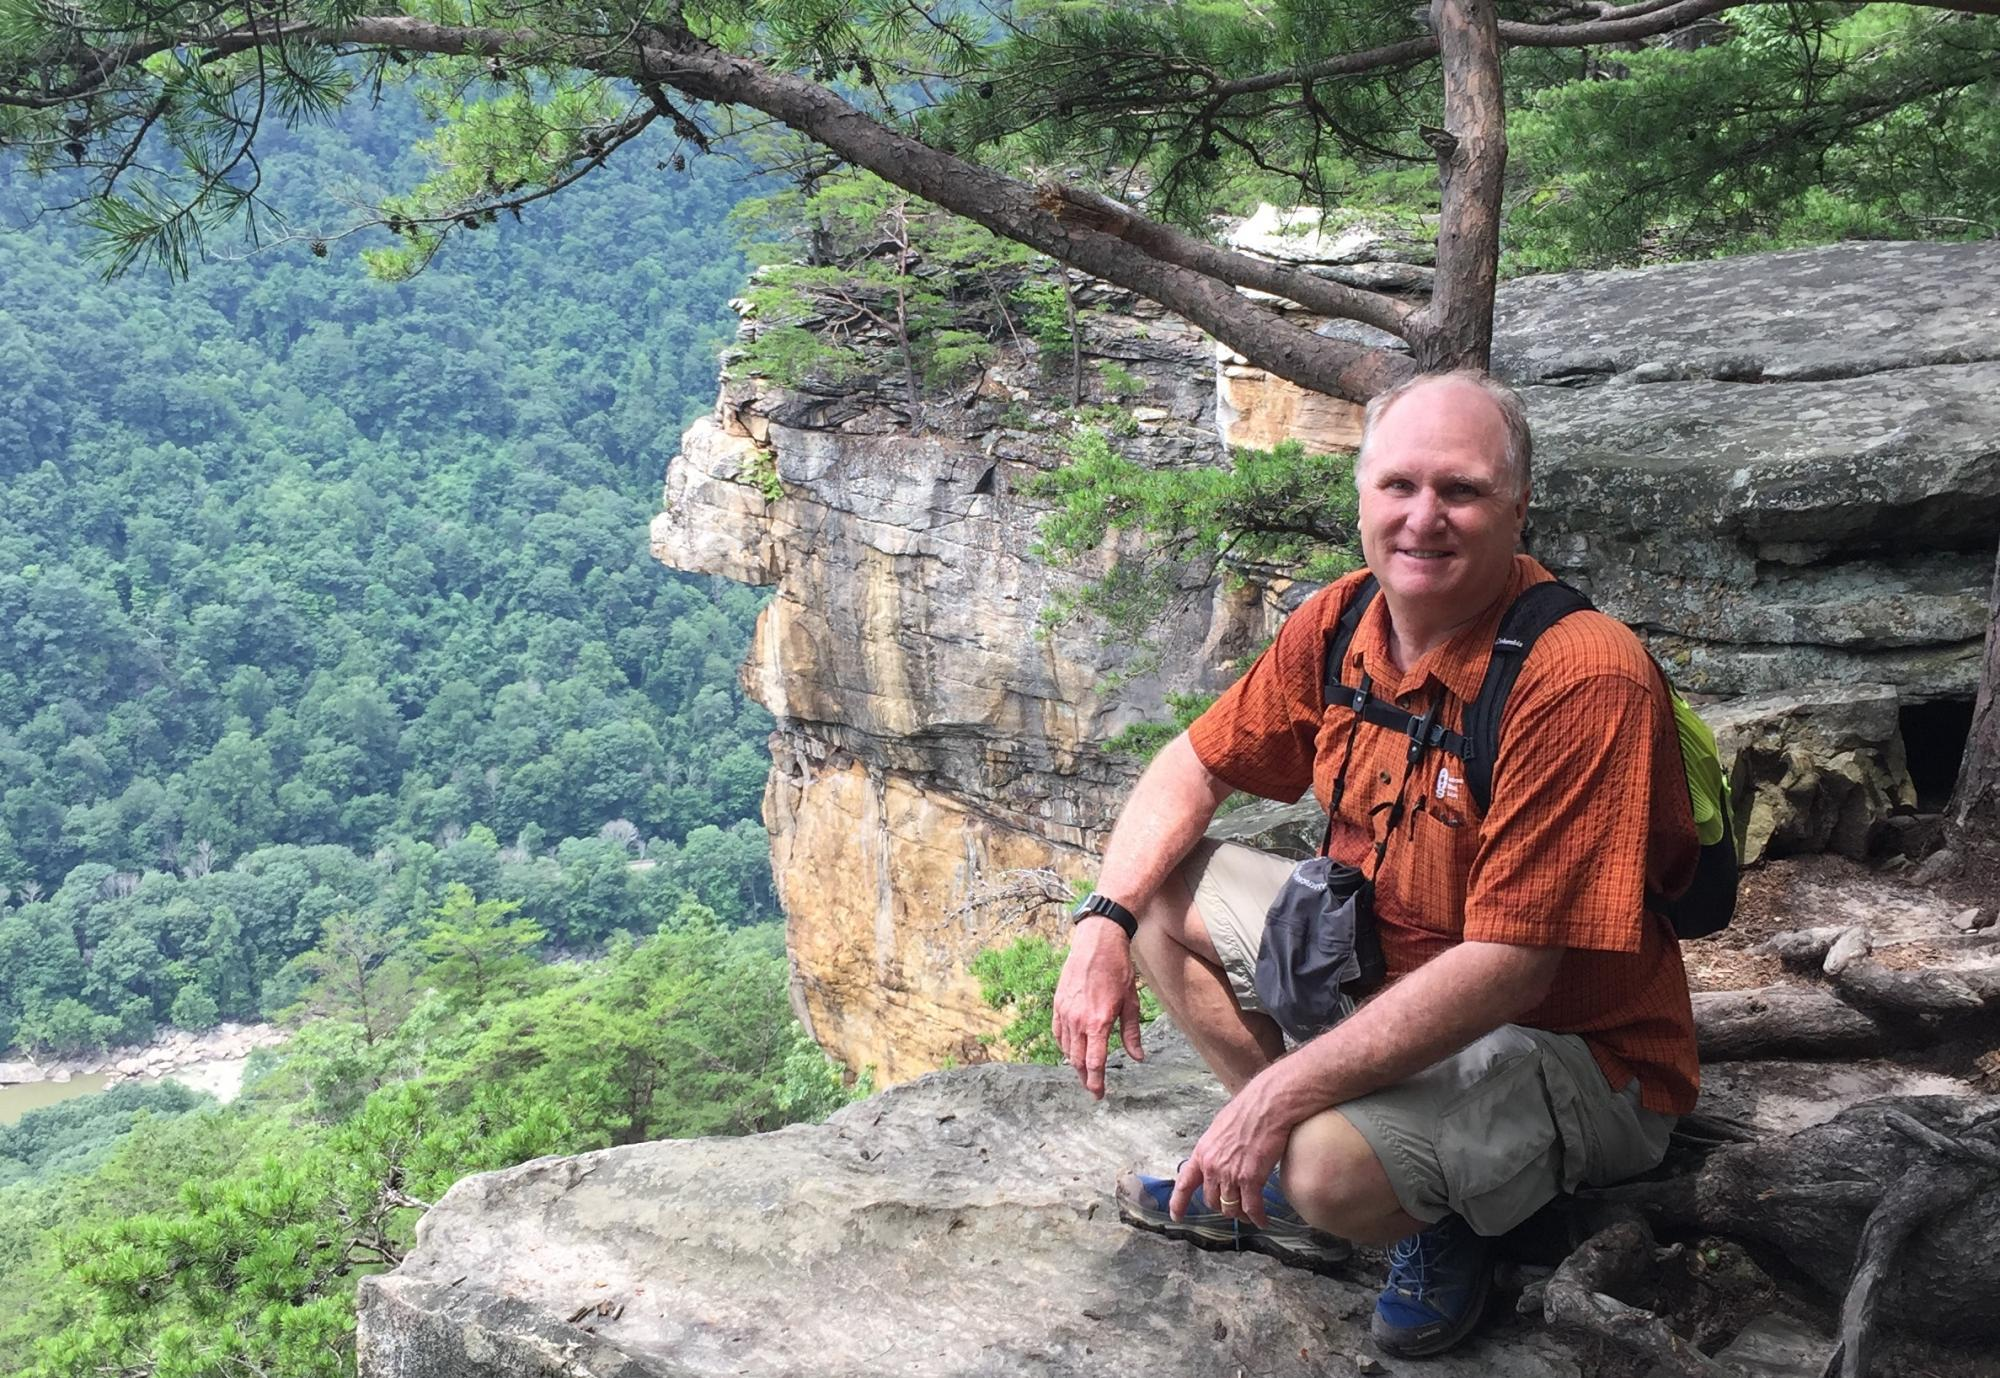 Dr. Miller on a recent hike along the Endless Wall Trail at the New River Gorge National Park, WV